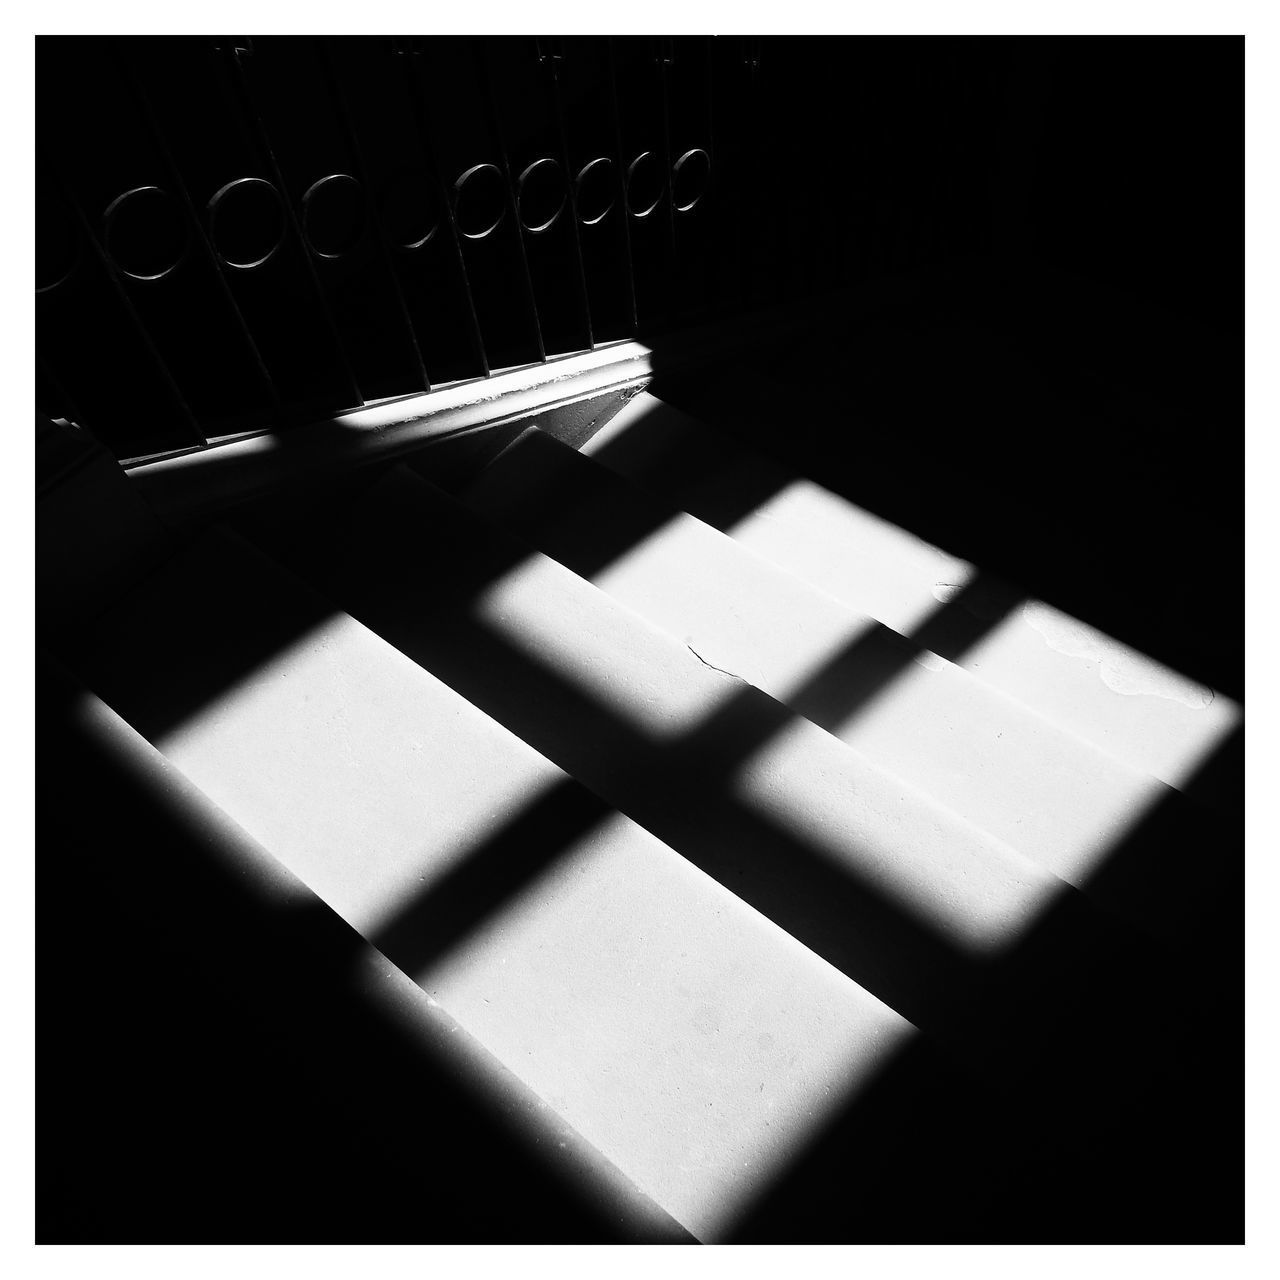 HIGH ANGLE VIEW OF SUNLIGHT FALLING ON FLOOR IN DARK ROOM